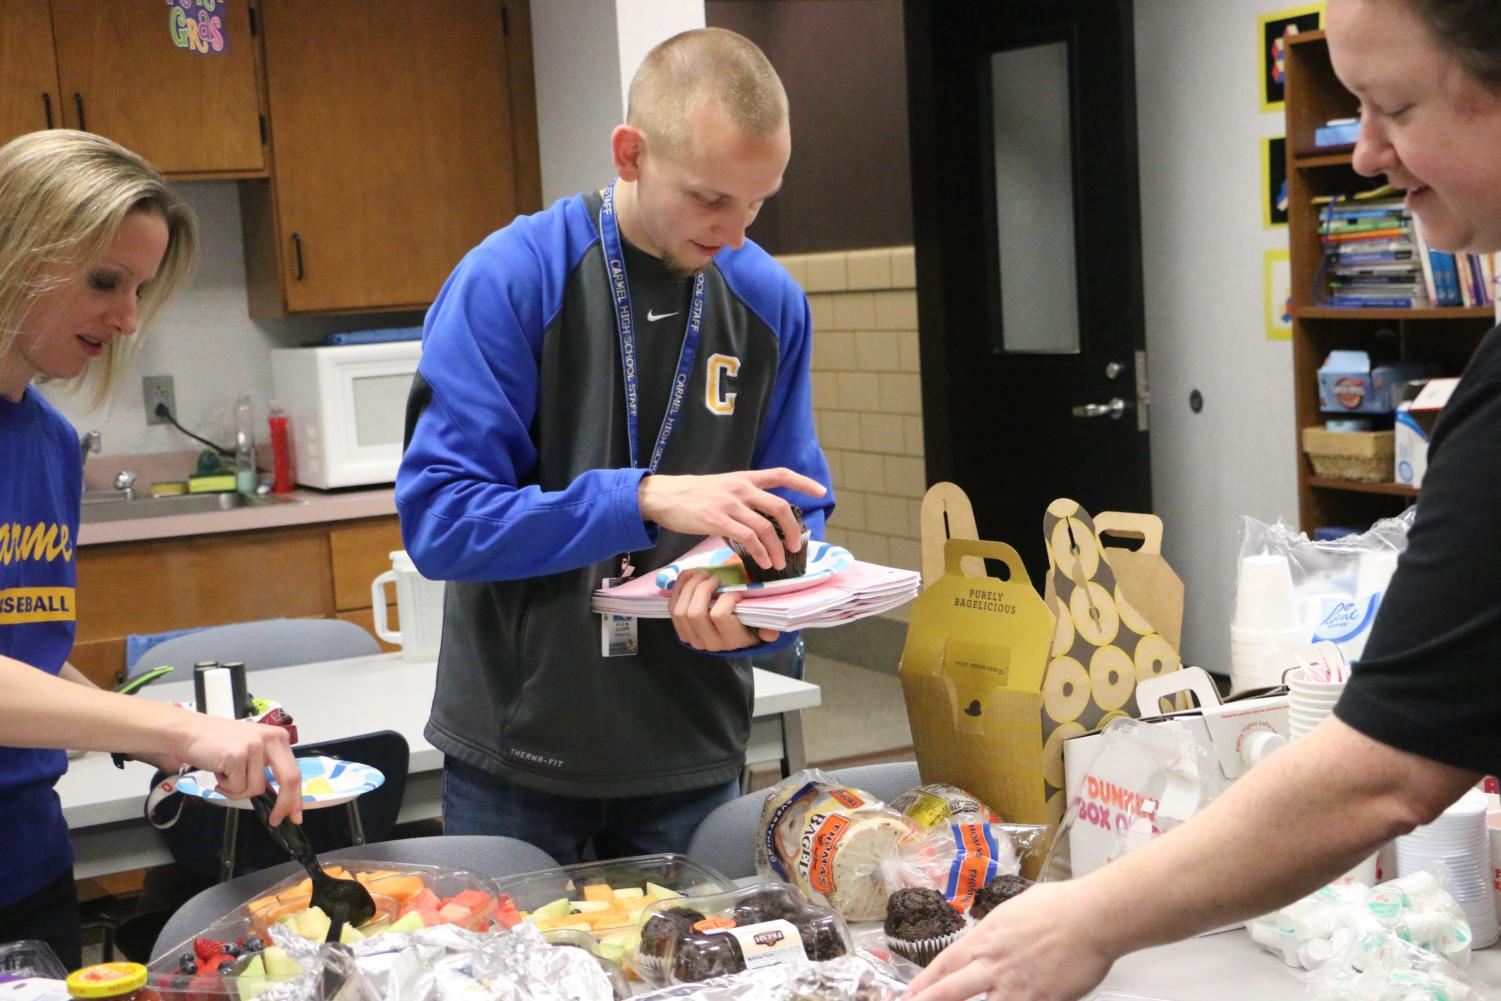 Breakfast Muffin Math teacher Kyle Cluver gets food from a breakfast event hosted by Do Something Club. The math department was awarded a free breakfast for collecting the most canned food for SENSE Charter School